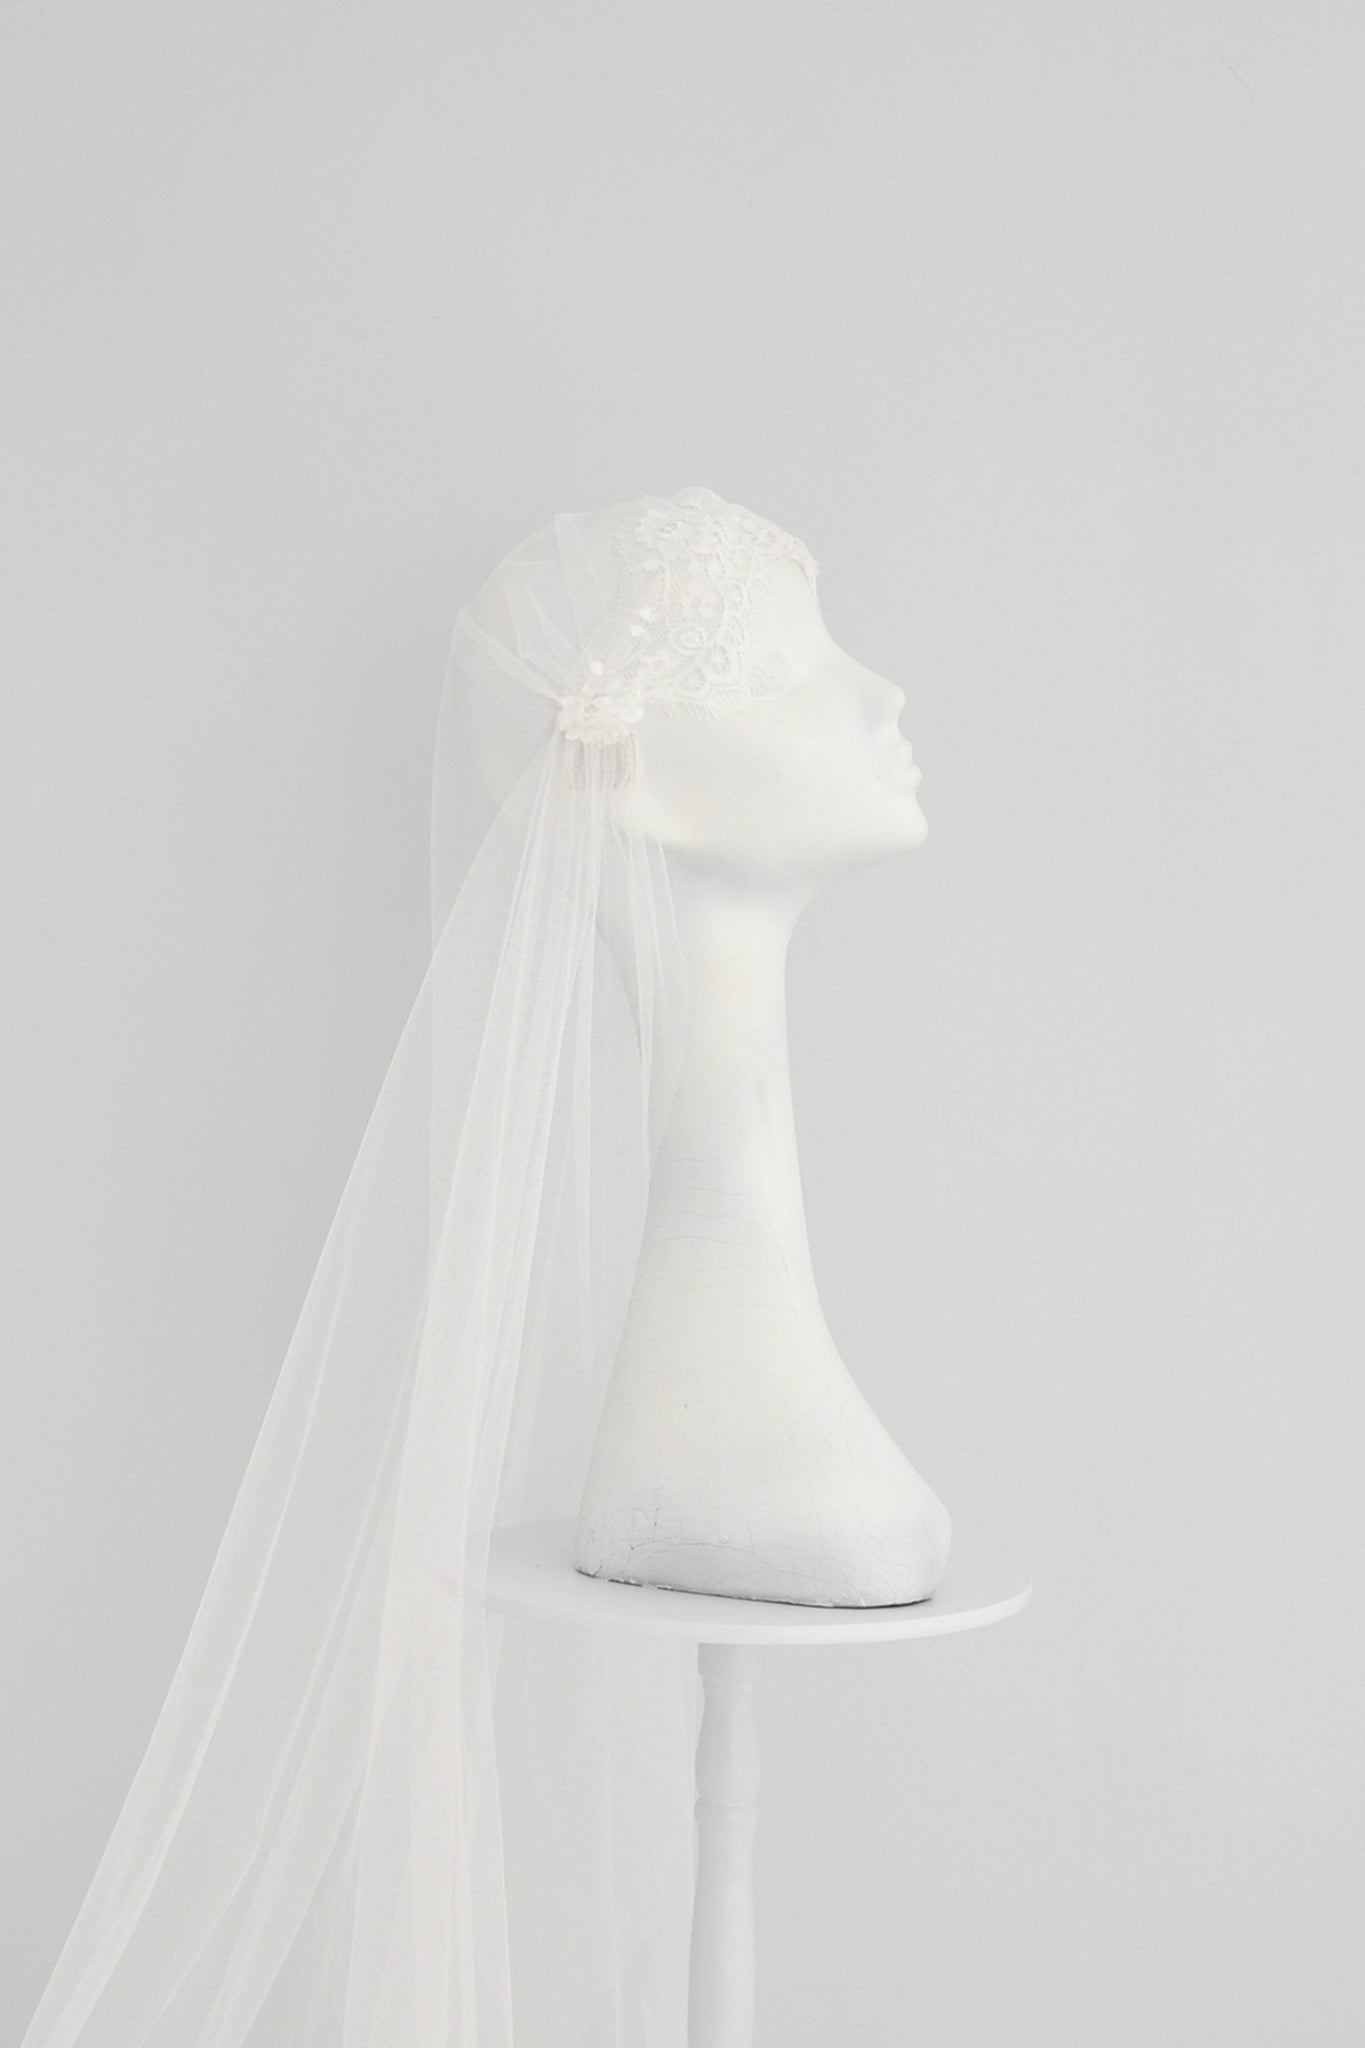 Silk style lace Juliet cap wedding veil - 'Amelie'